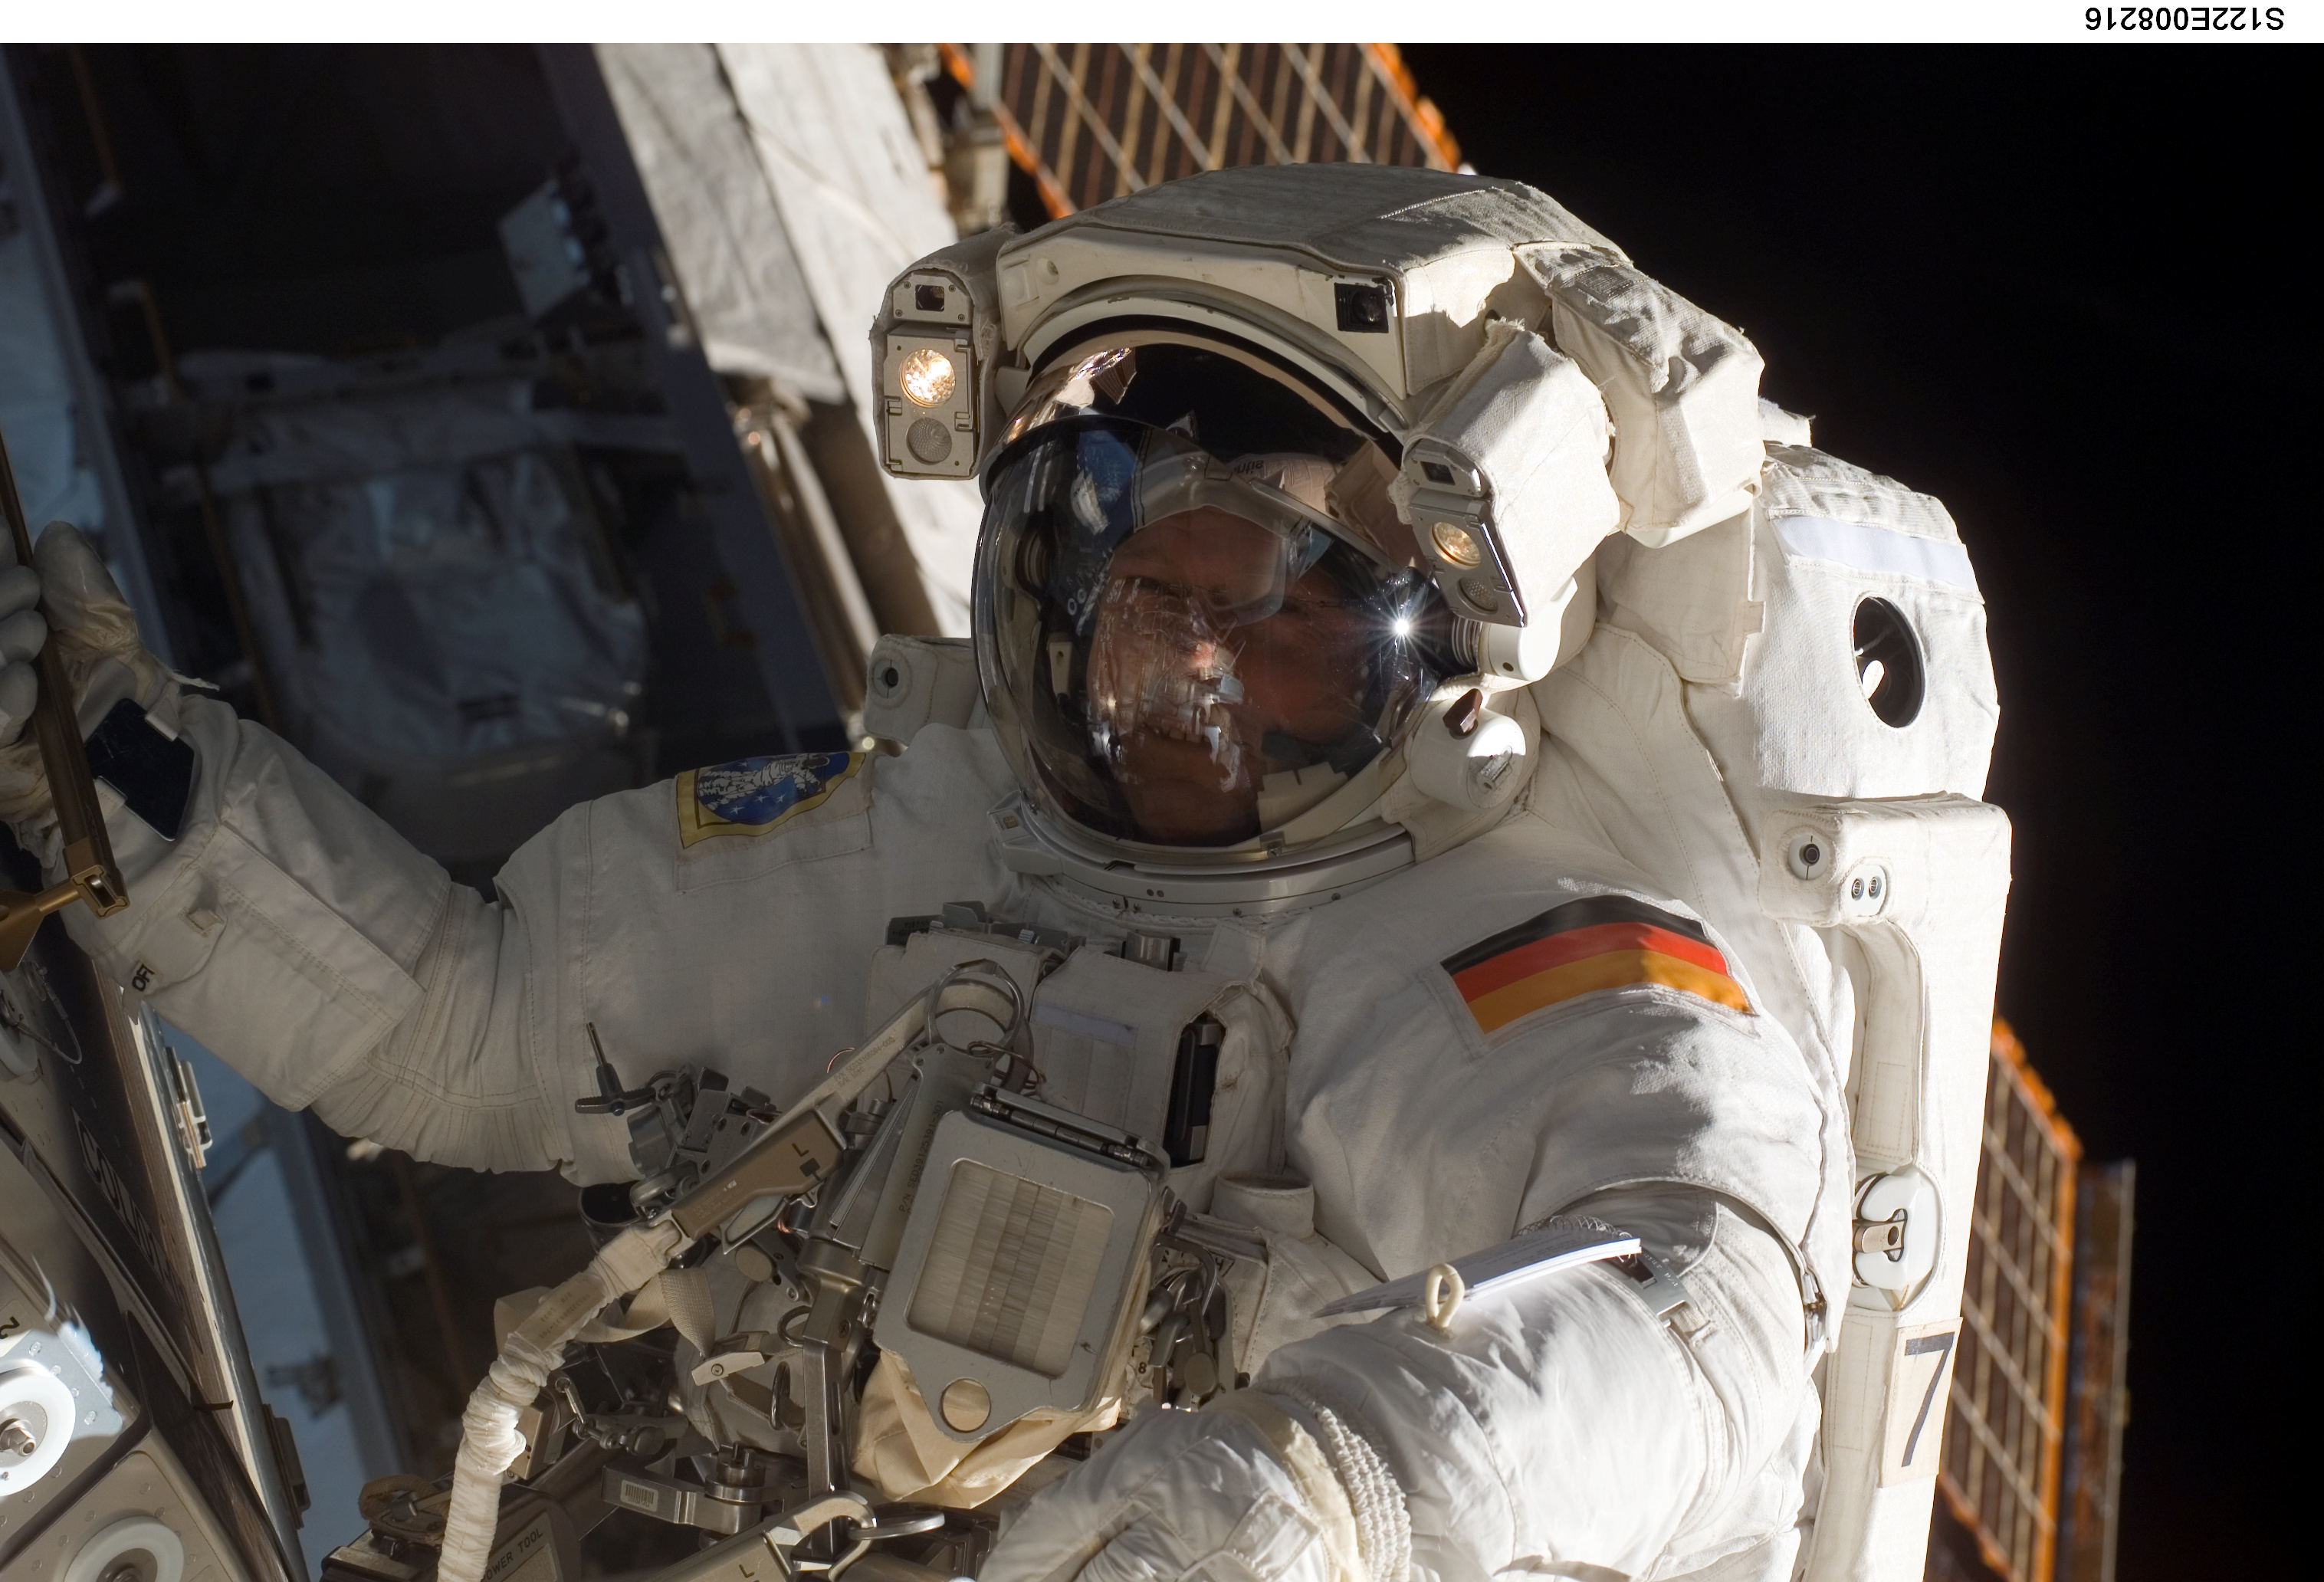 first esa astronaut in space - photo #20